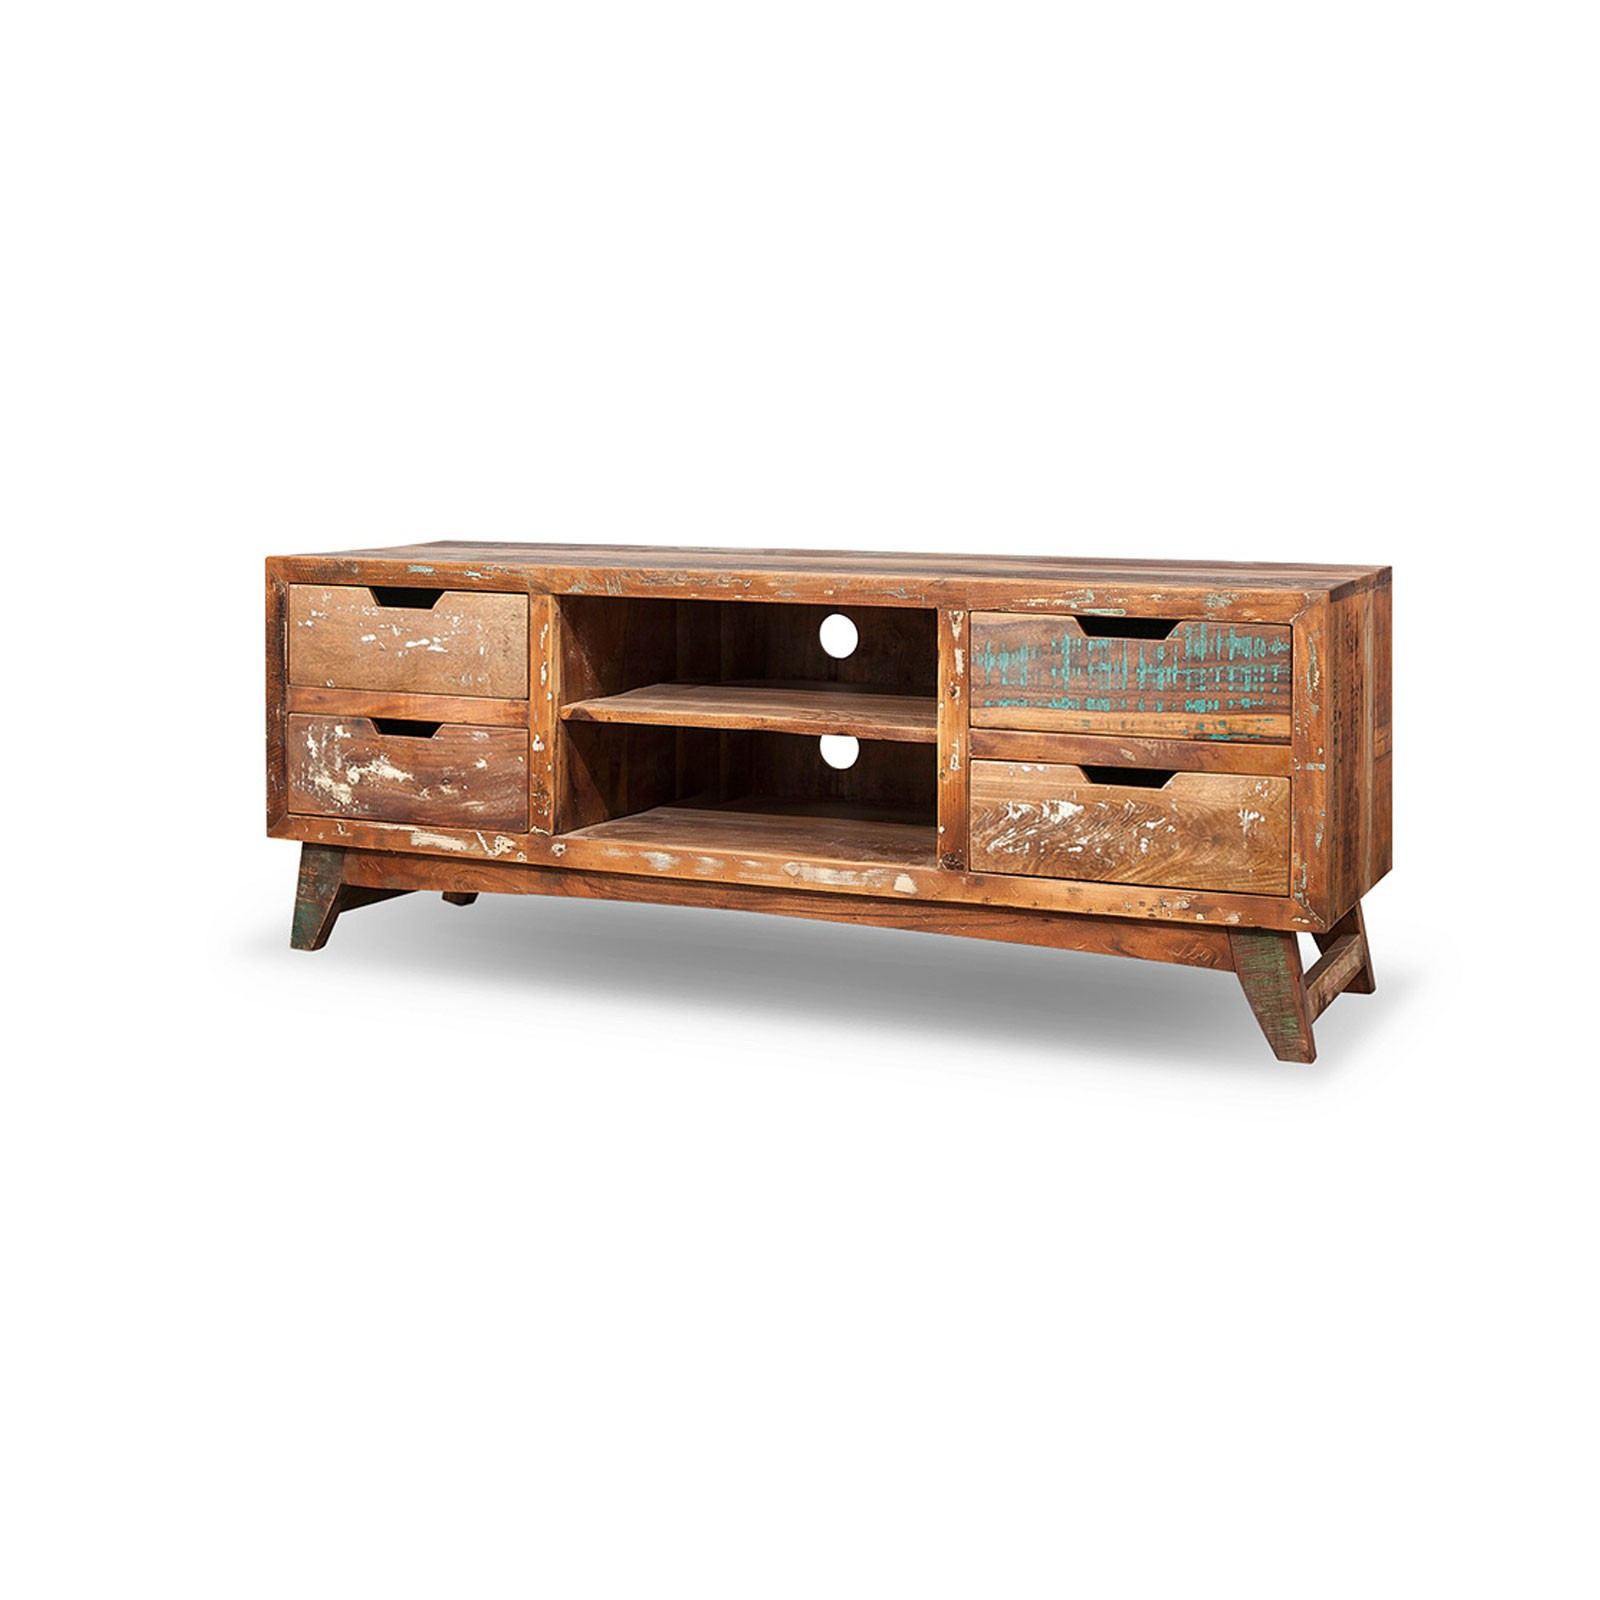 tv schrank aus recyceltem massivholz vintage shabby chic malm. Black Bedroom Furniture Sets. Home Design Ideas